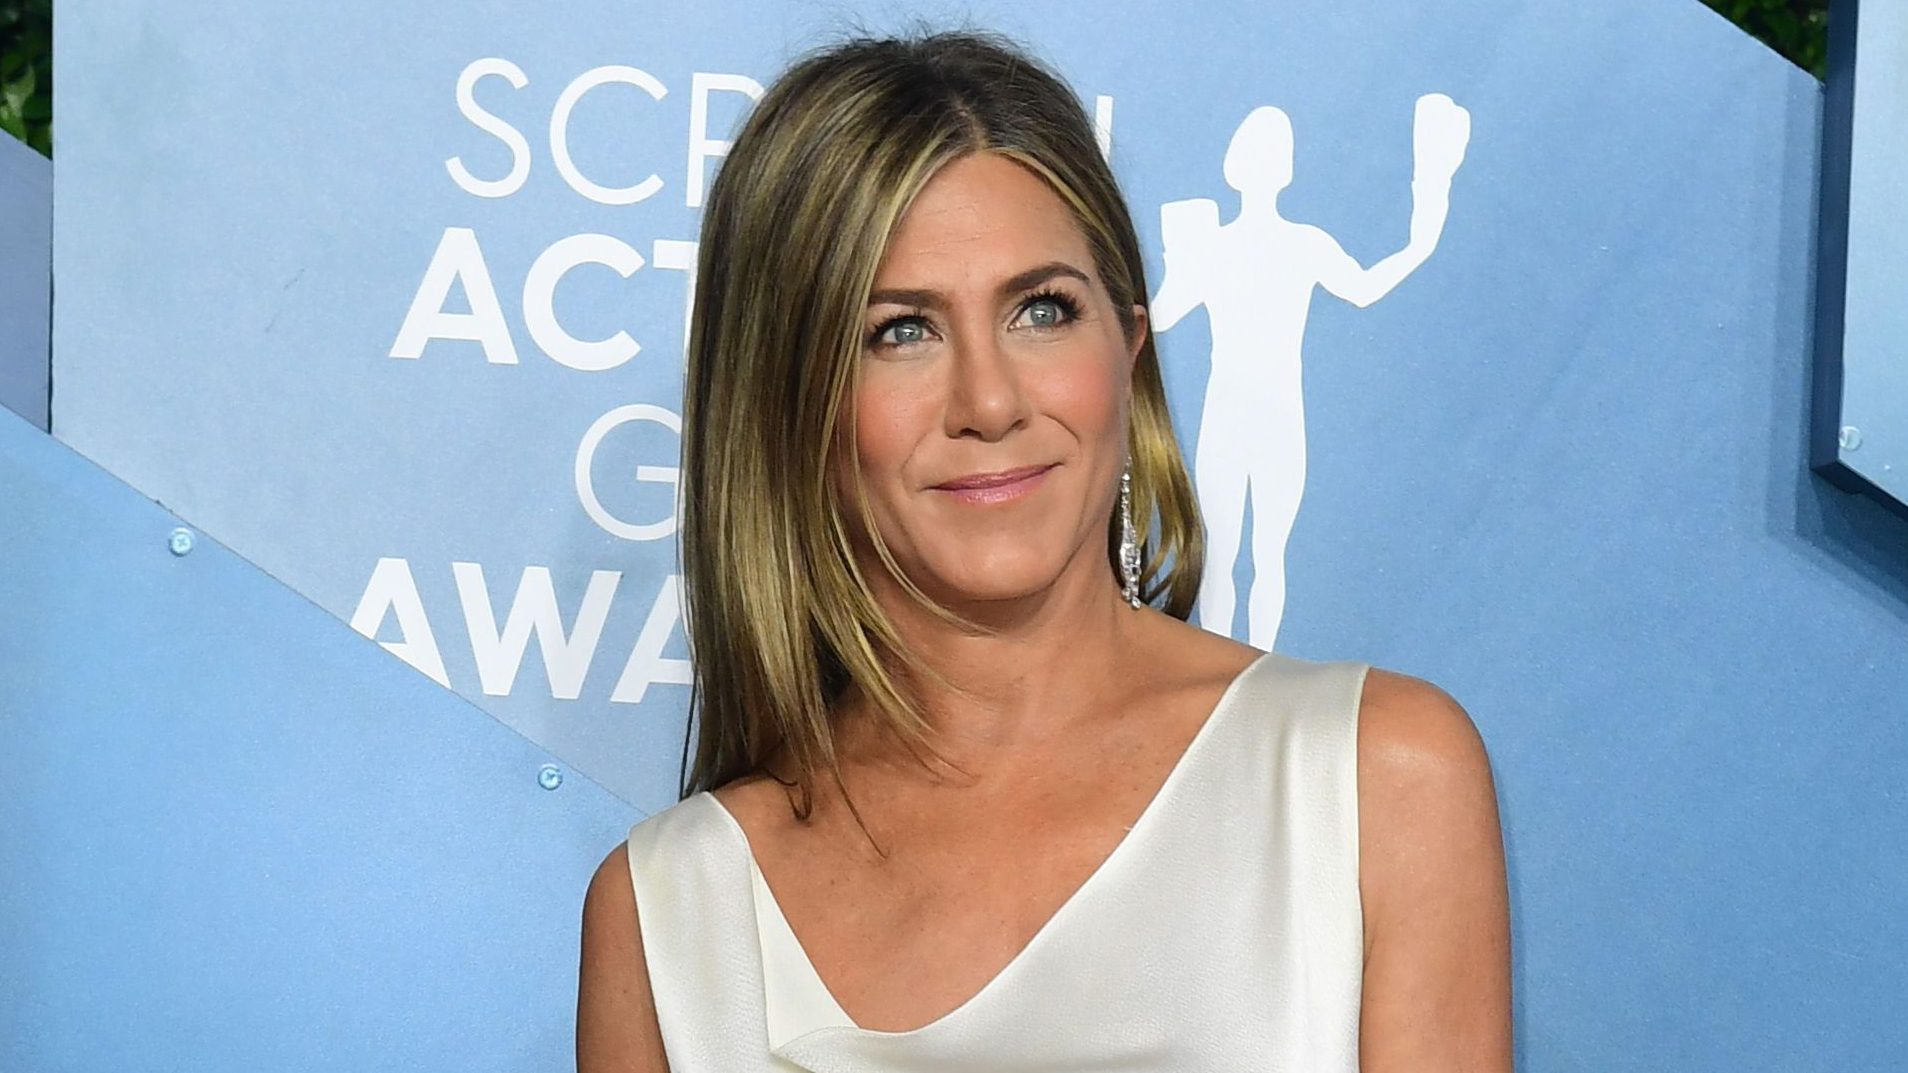 Jennifer Aniston discourages voters from supporting Kanye West, casts her ballot for Joe Biden - Fox News